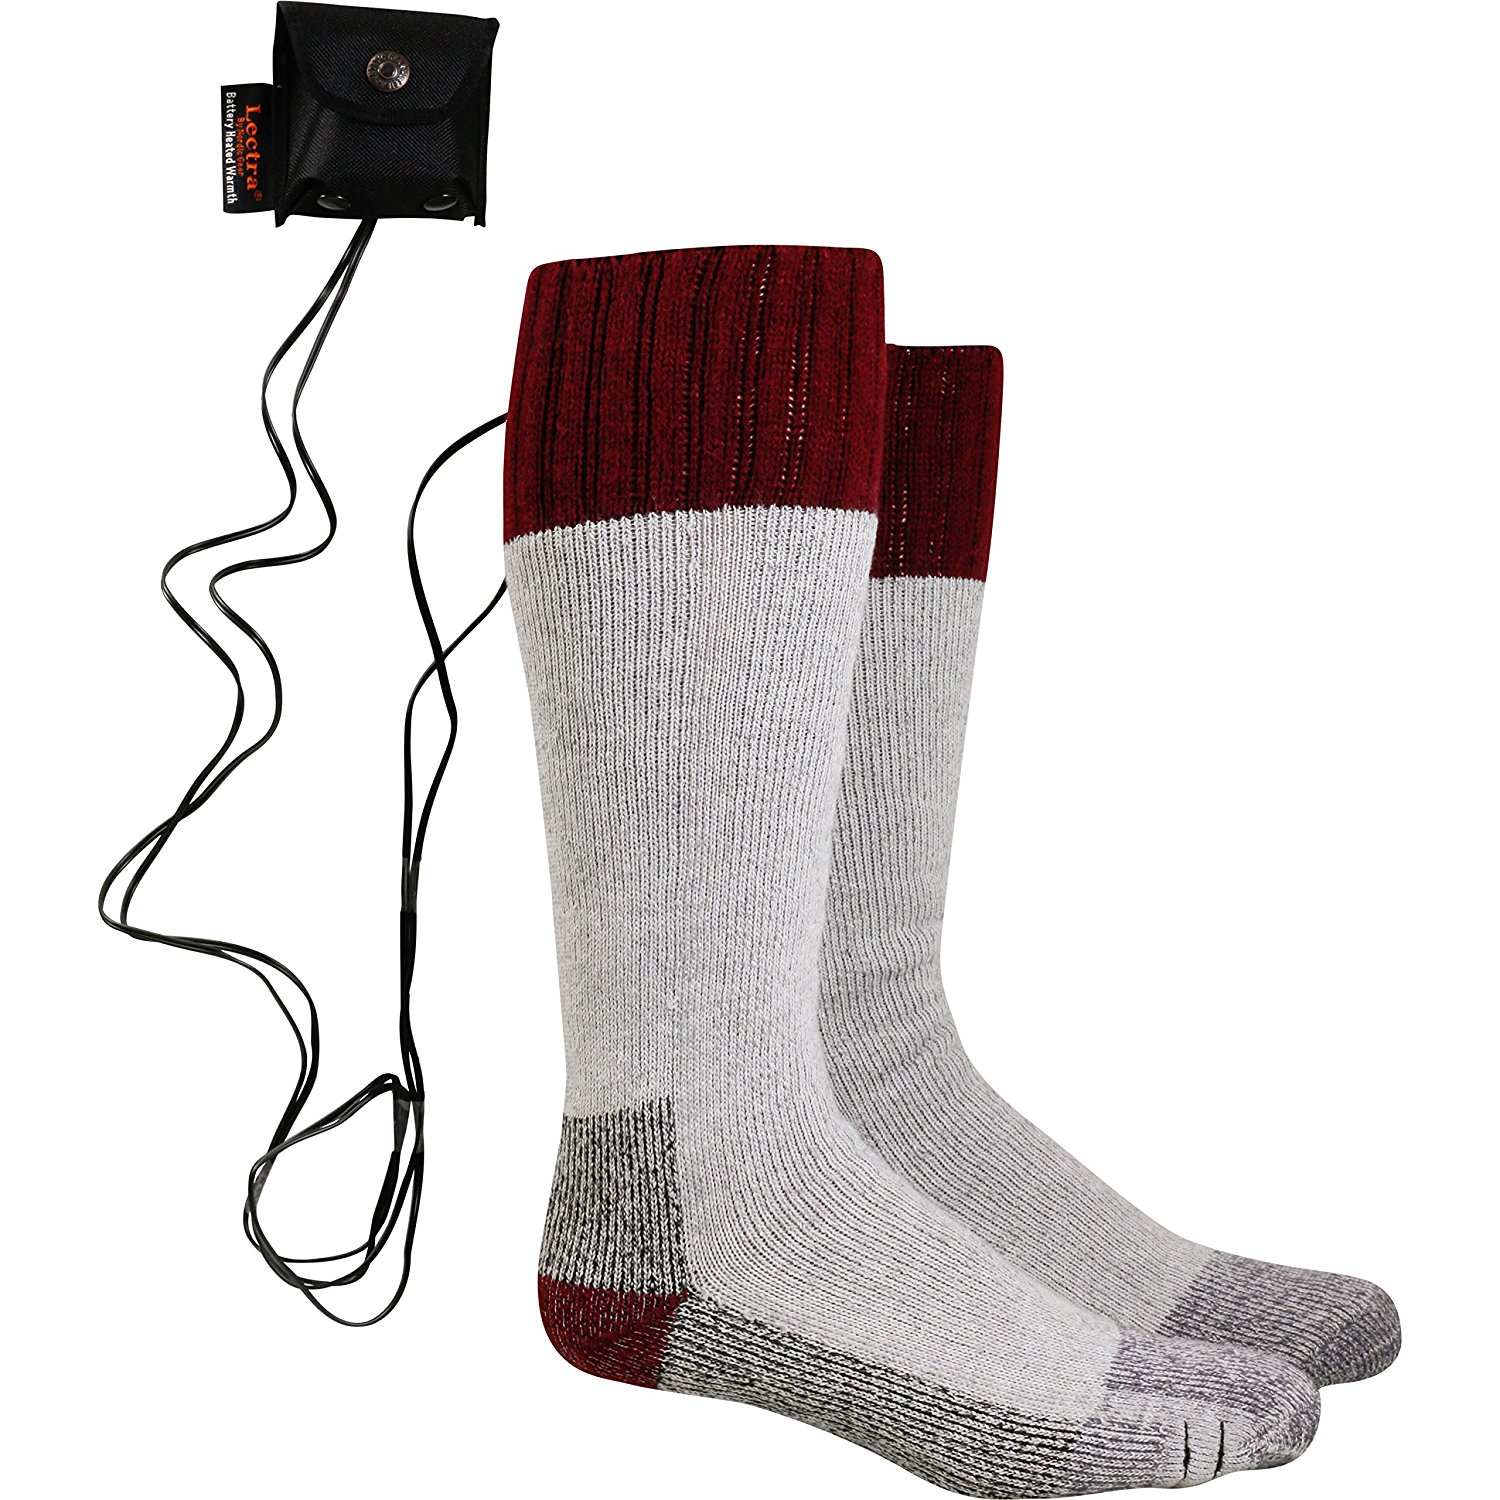 Lectra Sox Wader Socks, Electric Battery Heated Socks, Maroon